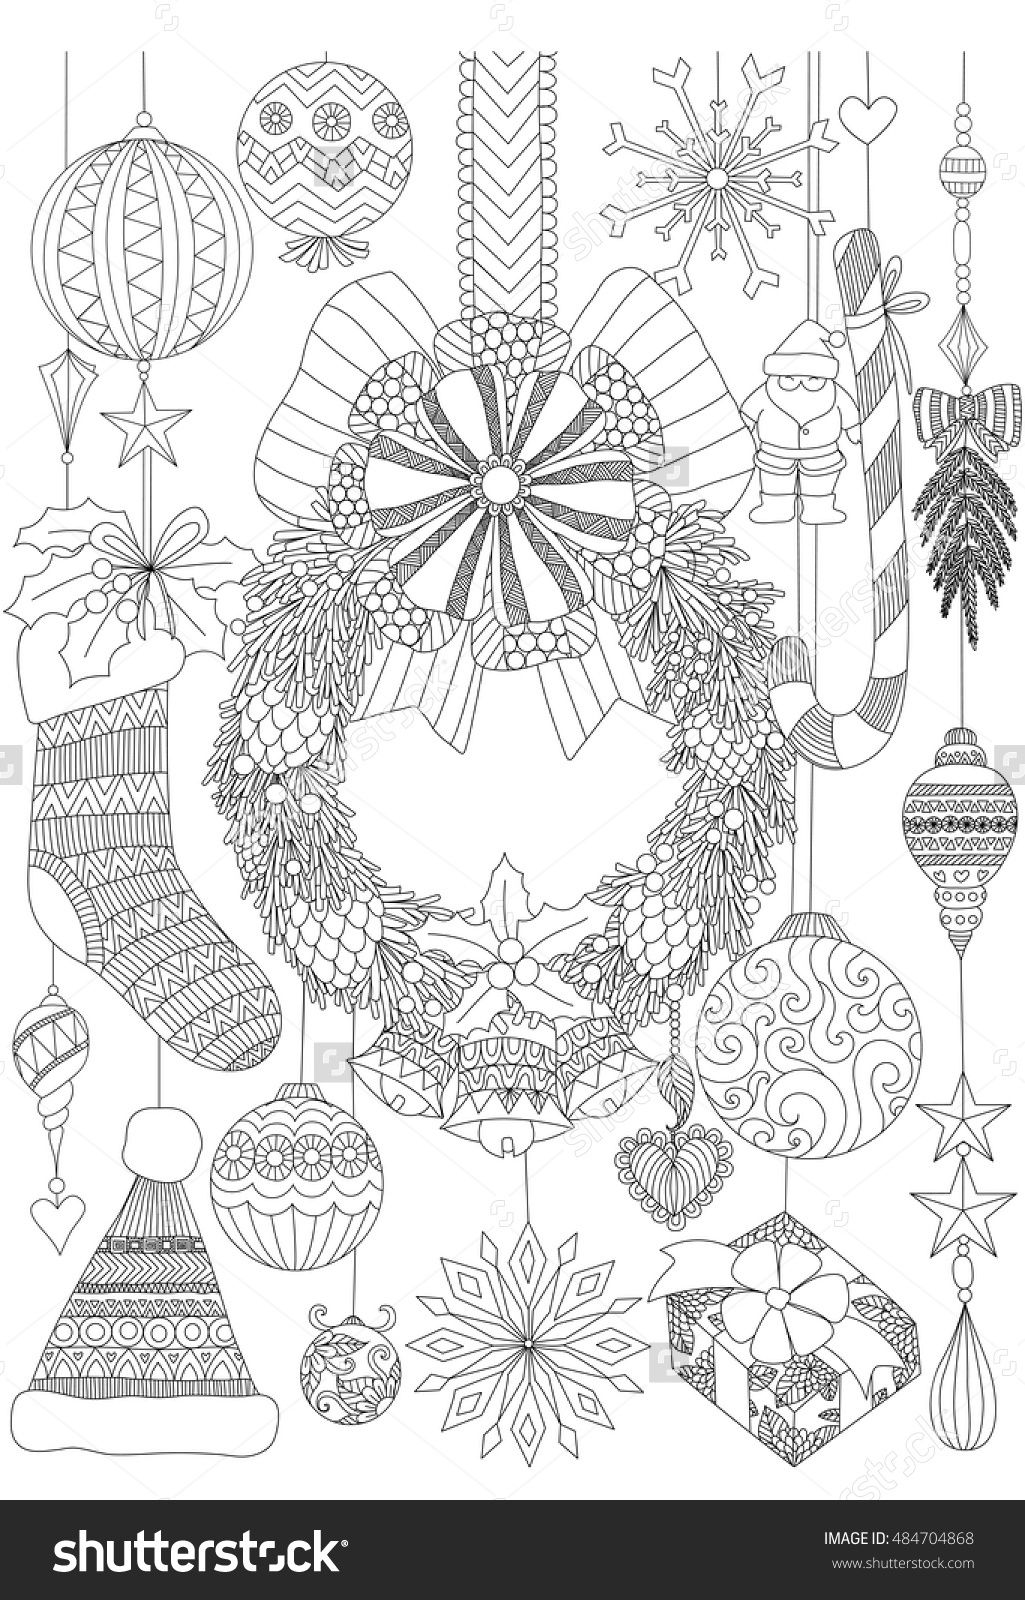 stock-vector-doodles-about-christmas-decorative-stuffs-for-adult ...